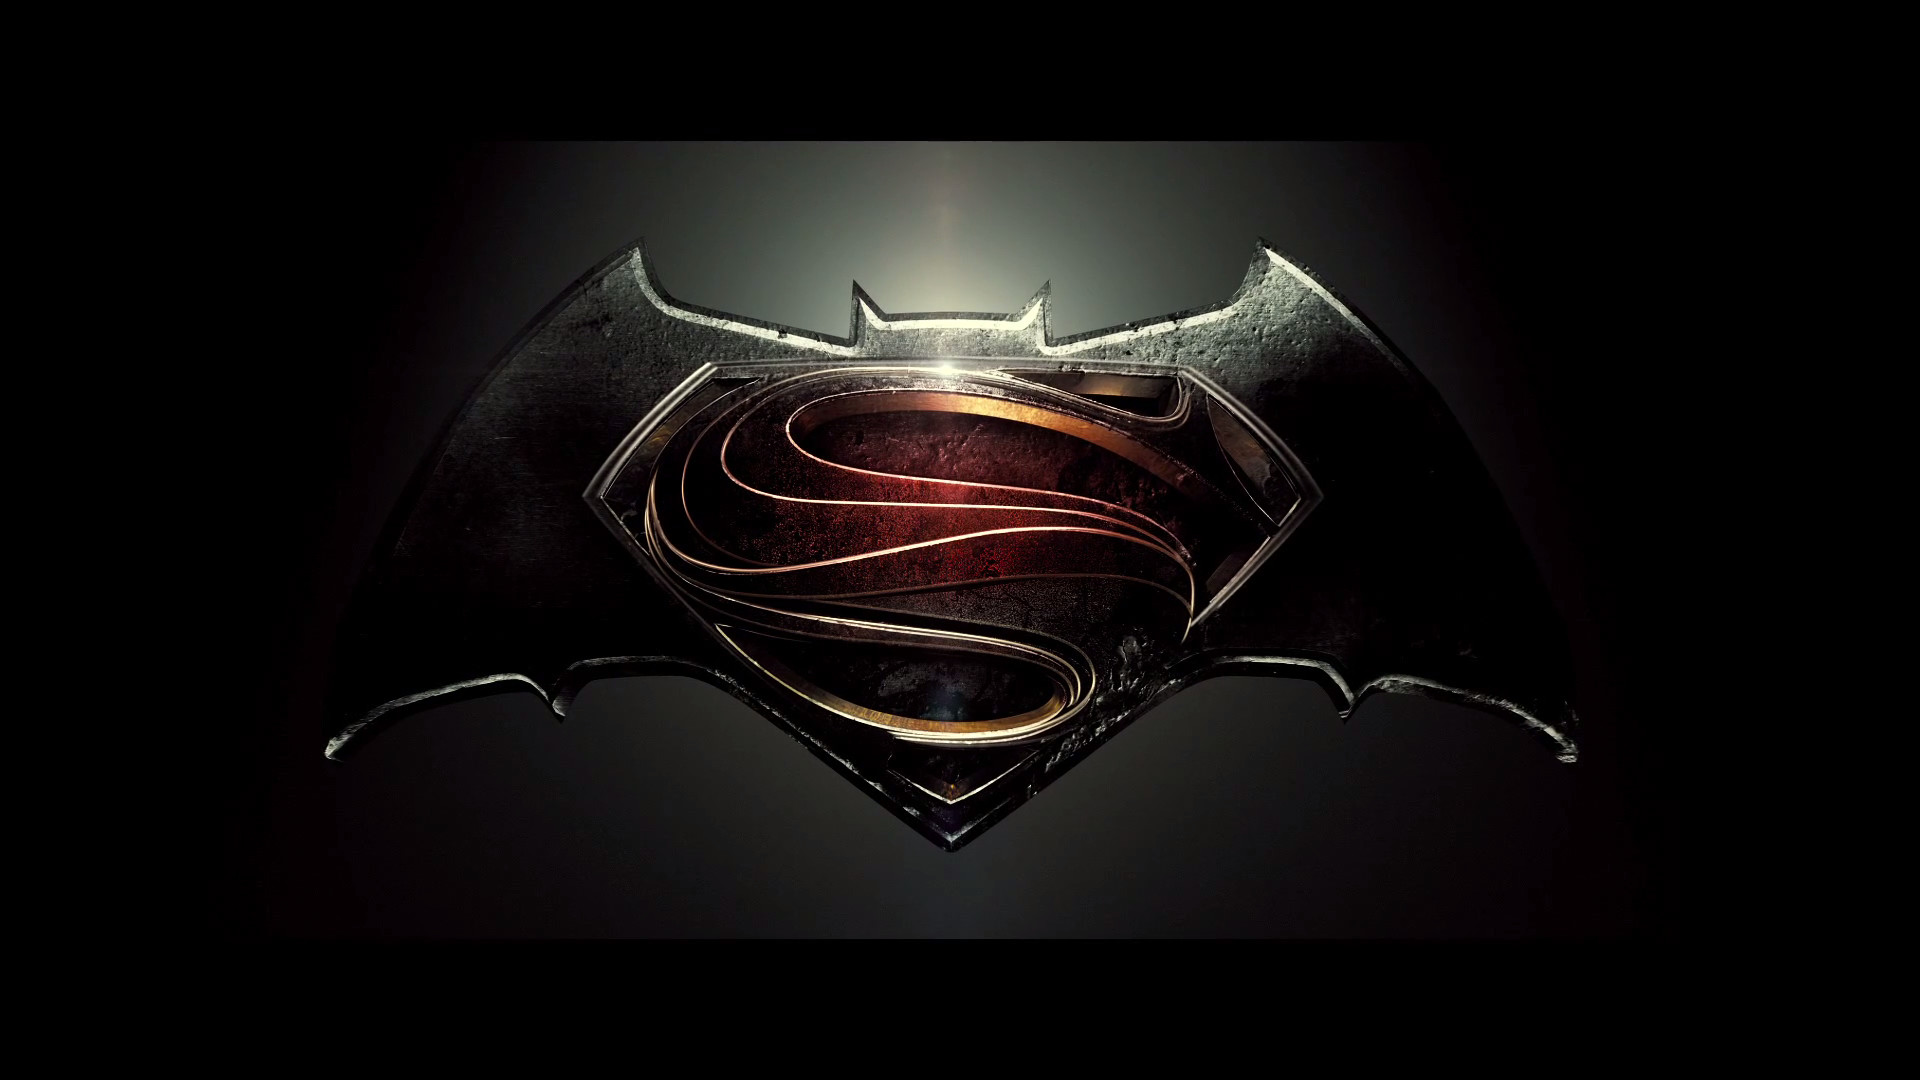 1920x1080 83 Batman v Superman: Dawn of Justice HD Wallpapers | Backgrounds -  Wallpaper Abyss